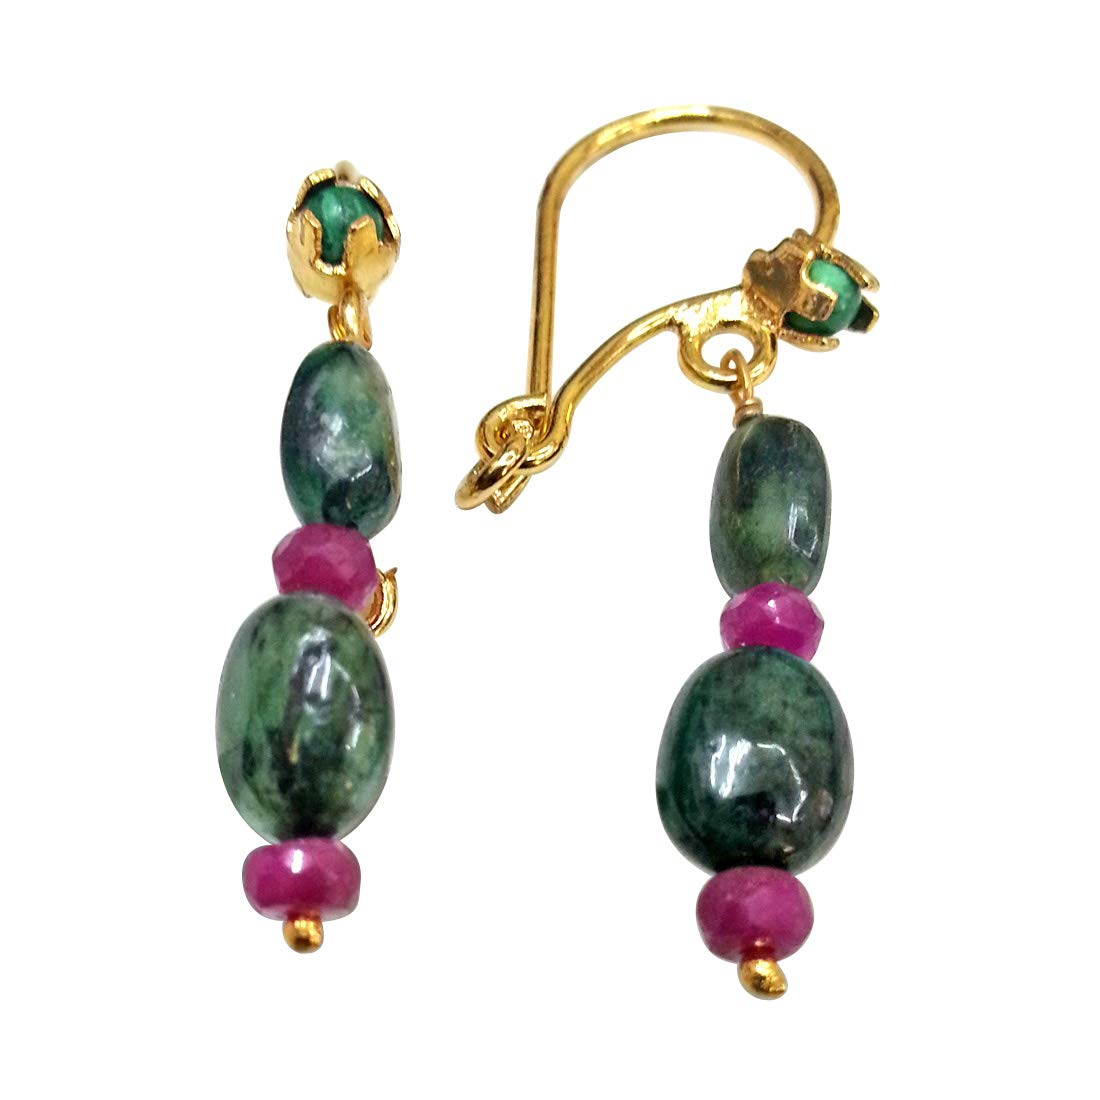 Enriching Elegance - Real Oval Emerald & Red Ruby Beads Hanging Earrings for Women (SE101)